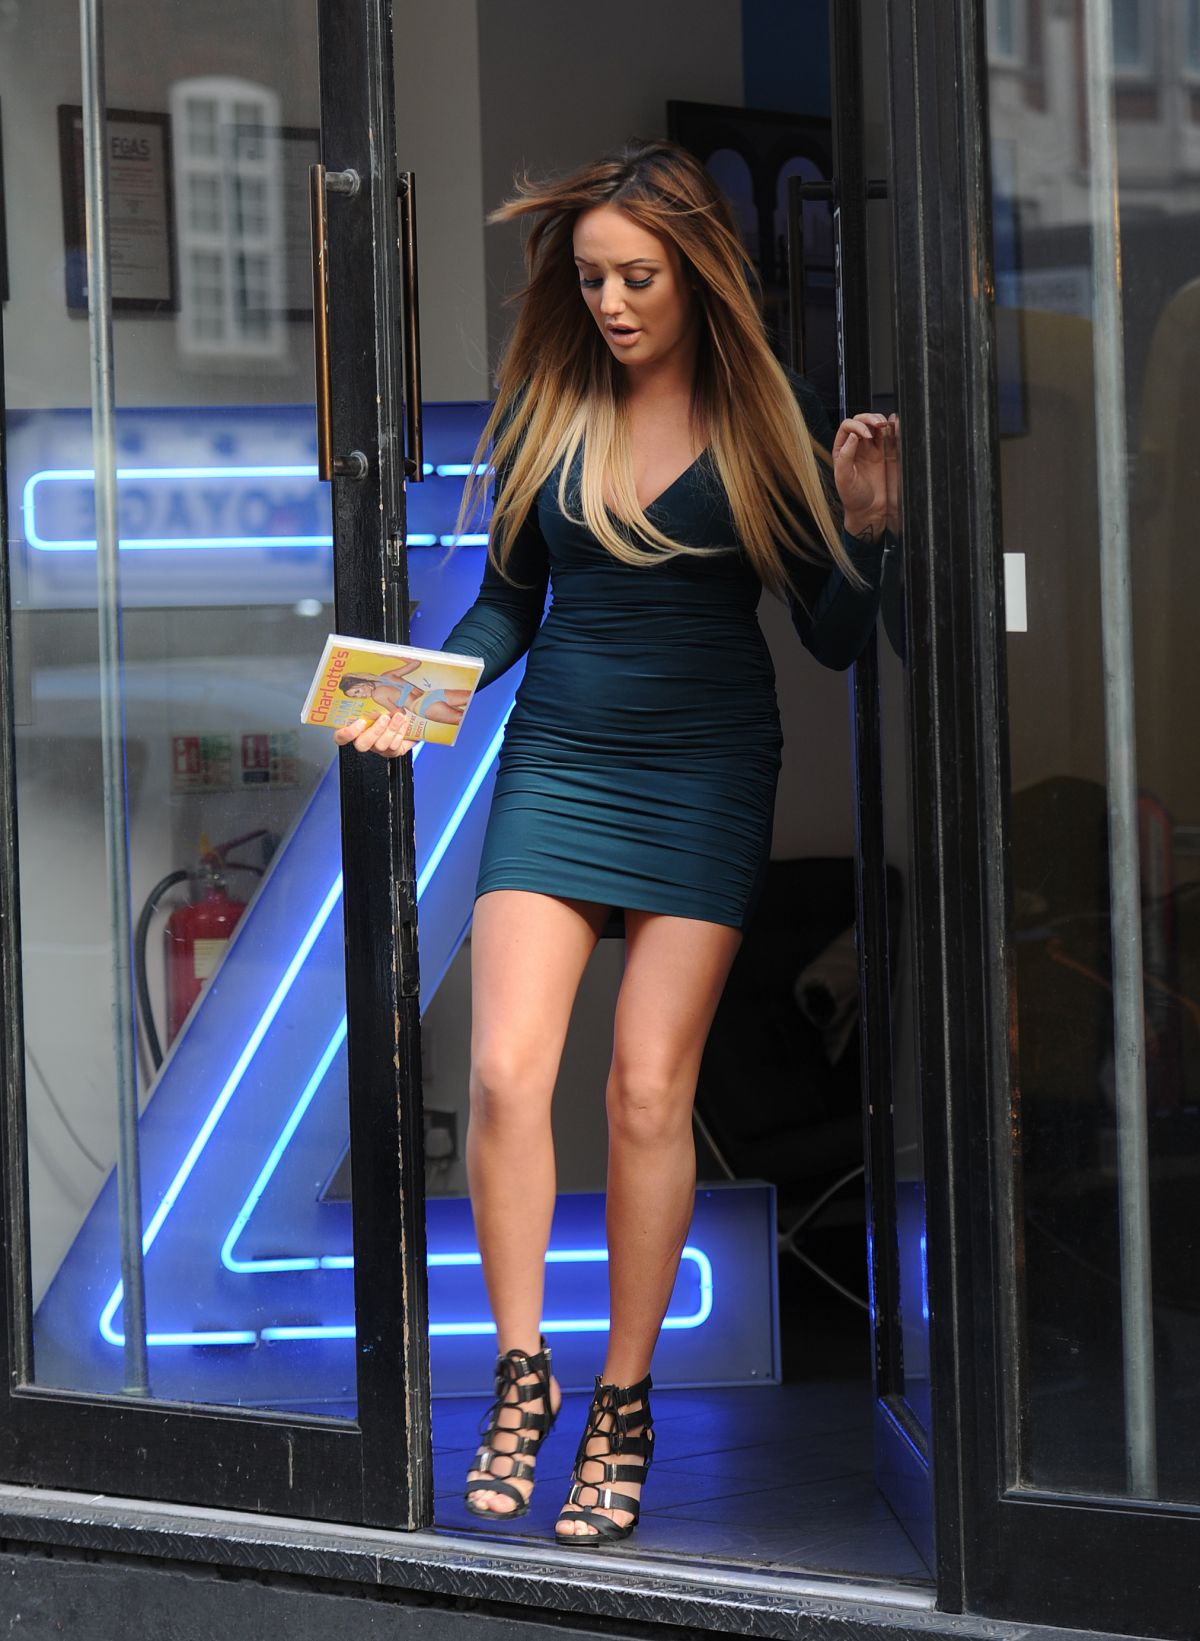 Charlotte Crosby Promotes Her Fitness Dvd In London 01 04